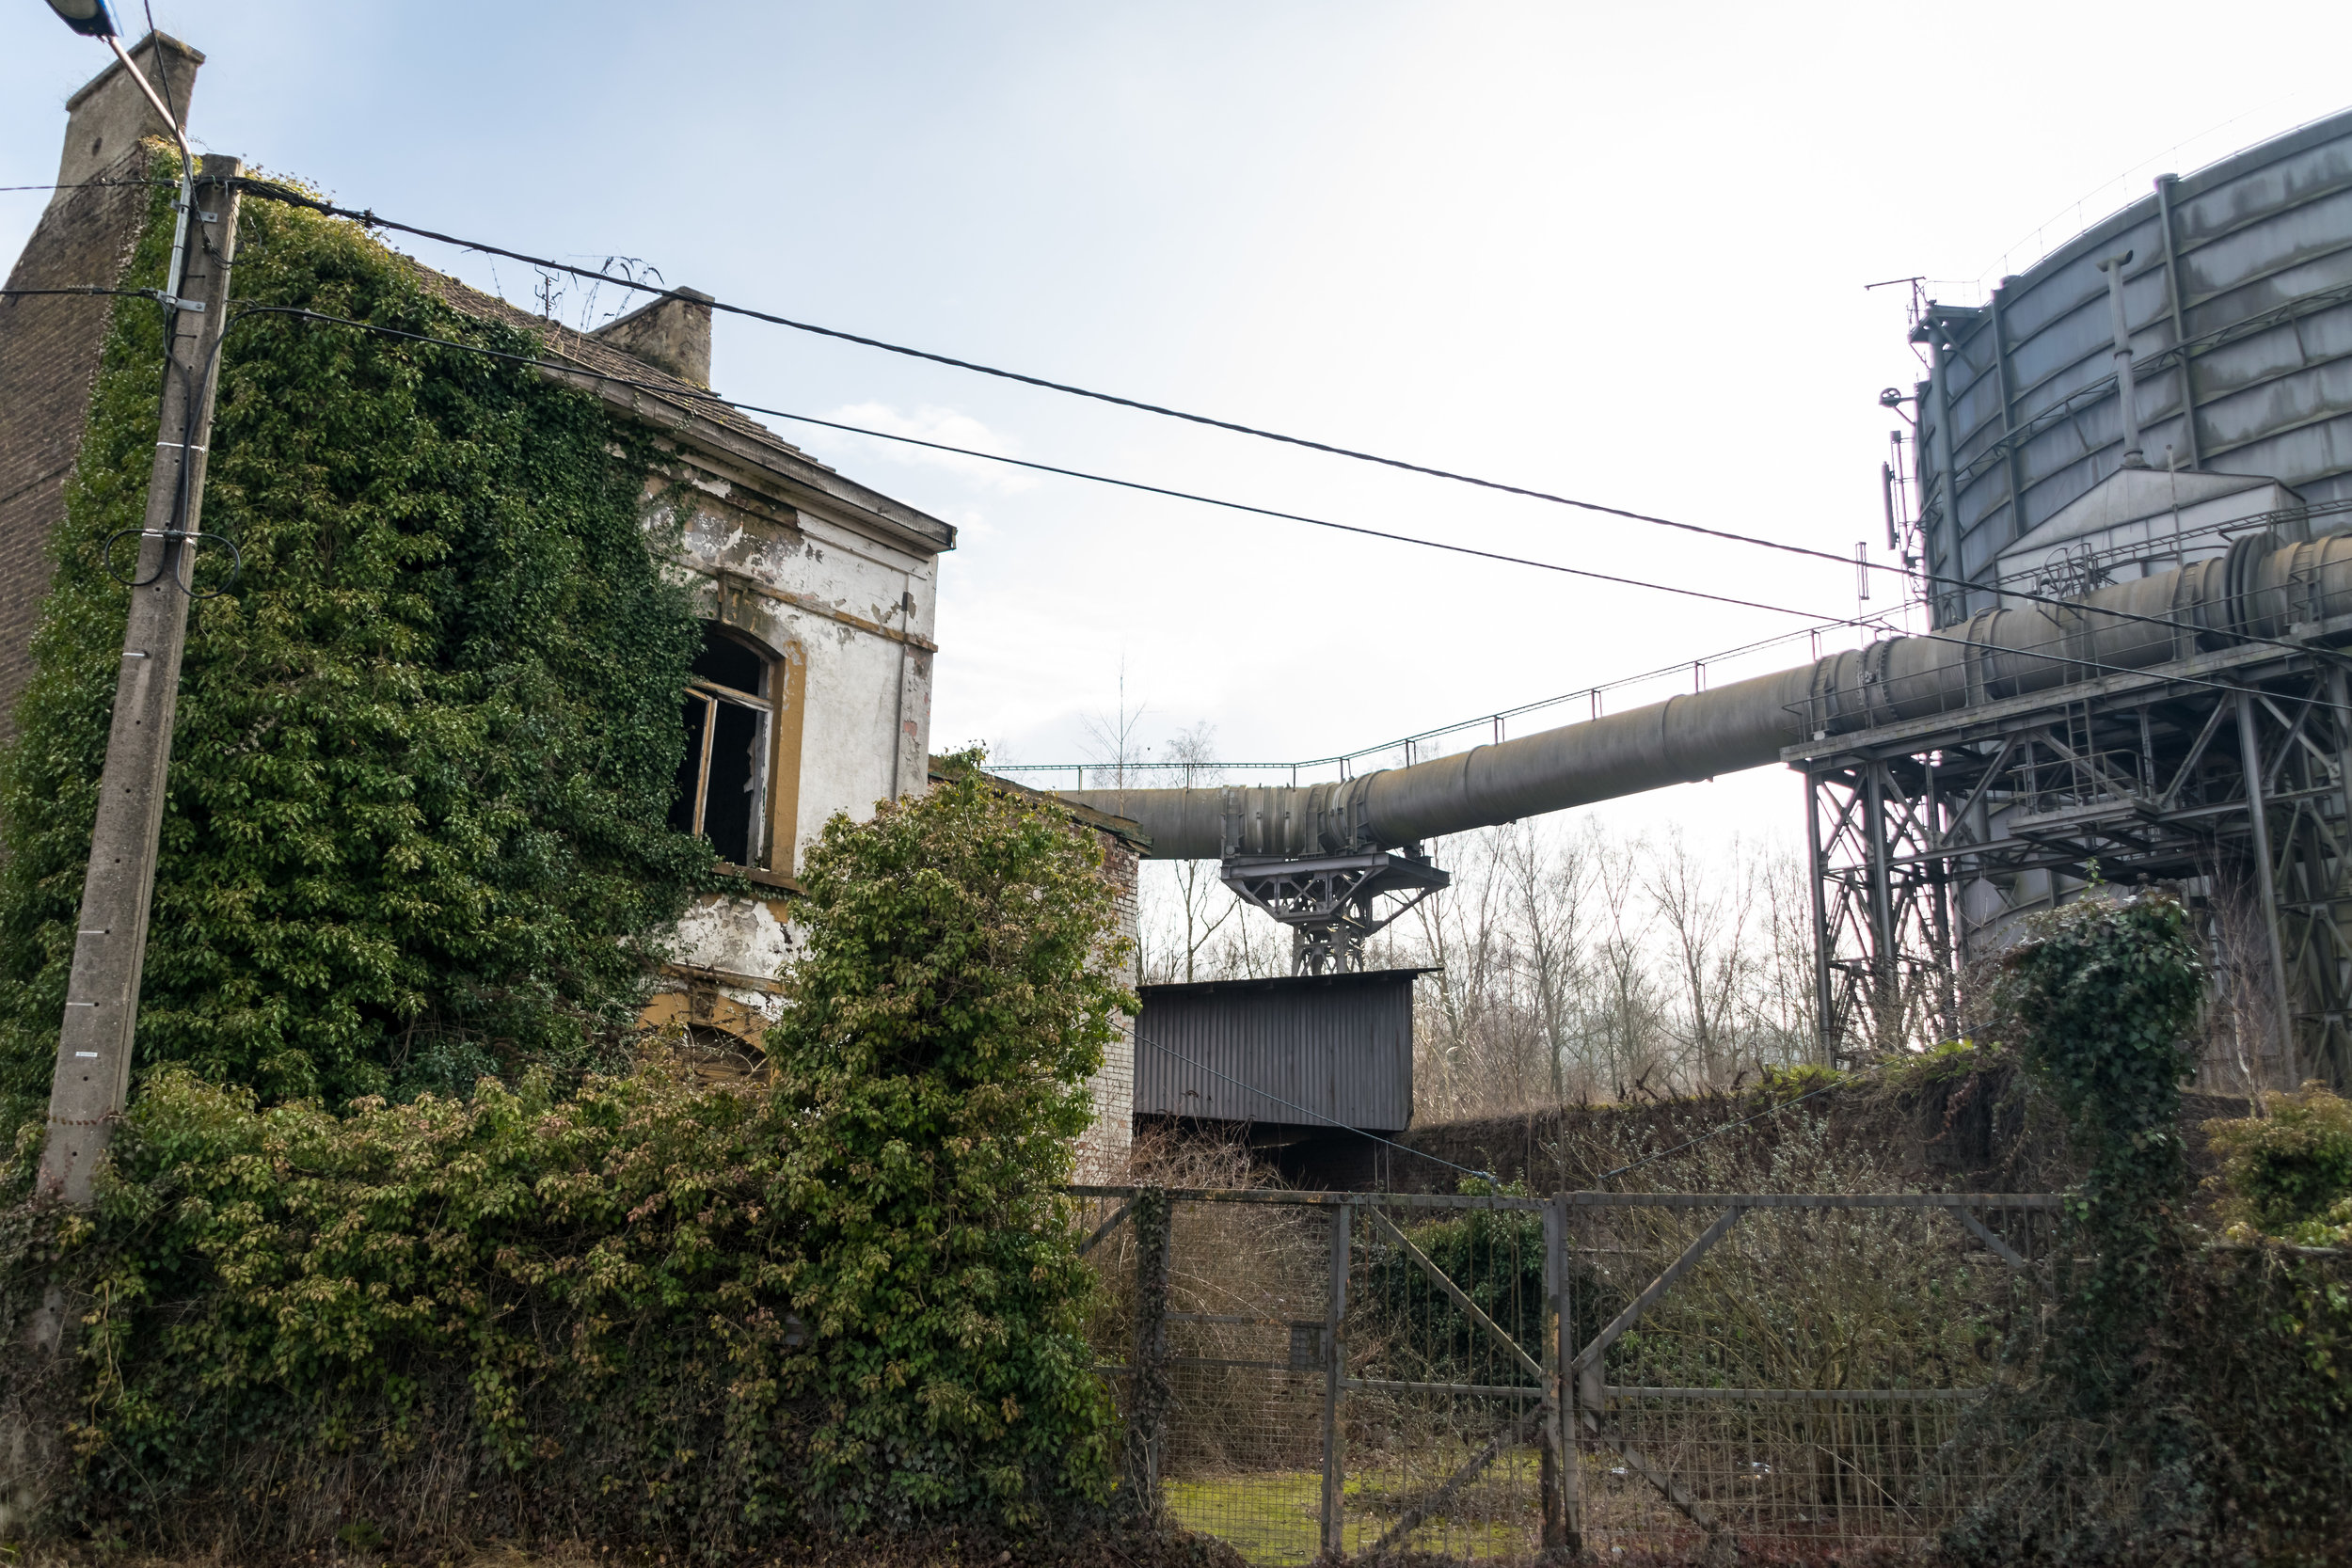 nearby abandoned house & industrial building